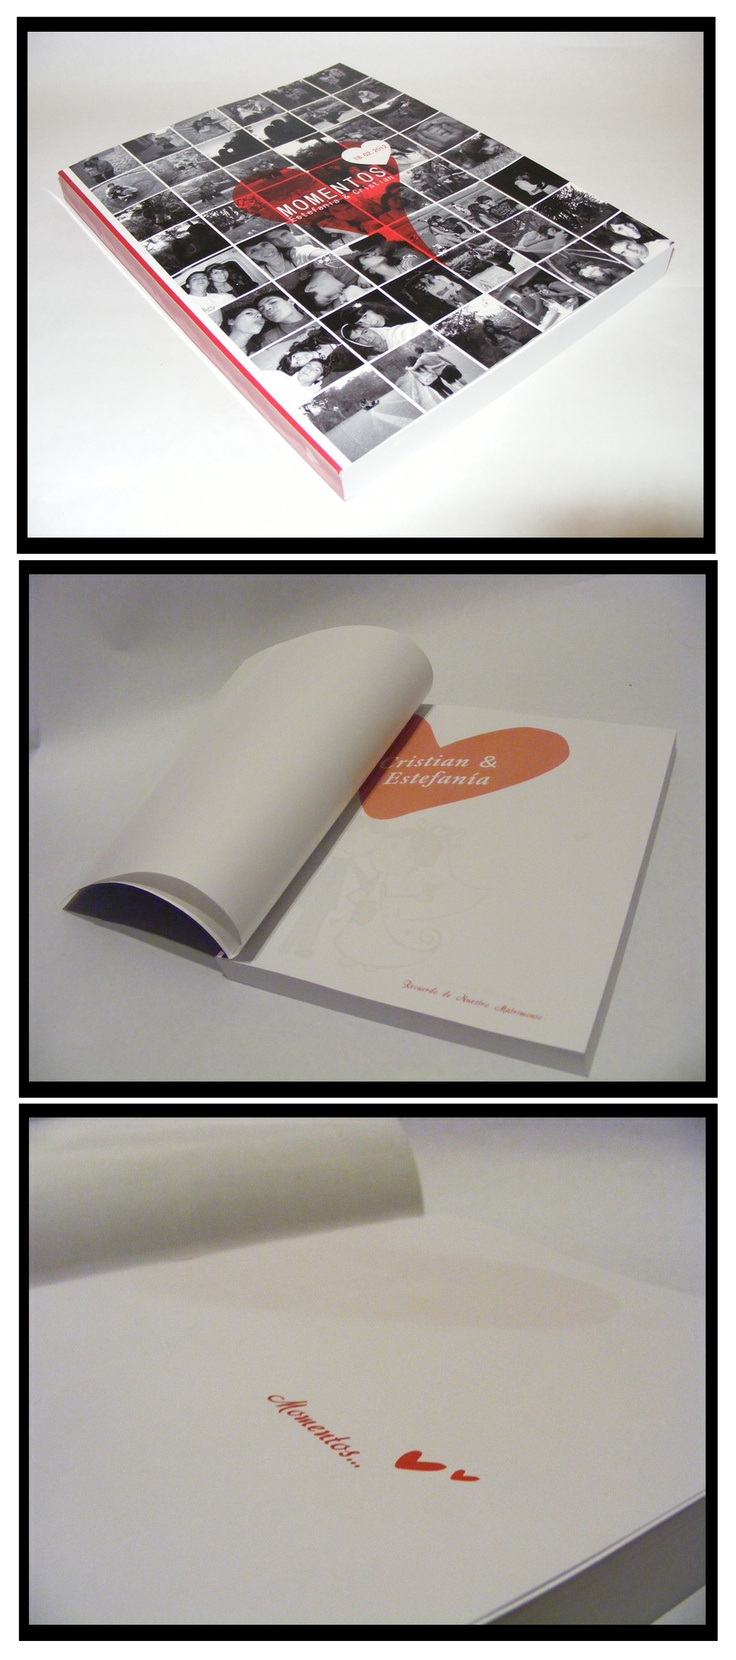 Book design for wedding souvenirs made ​​by me.